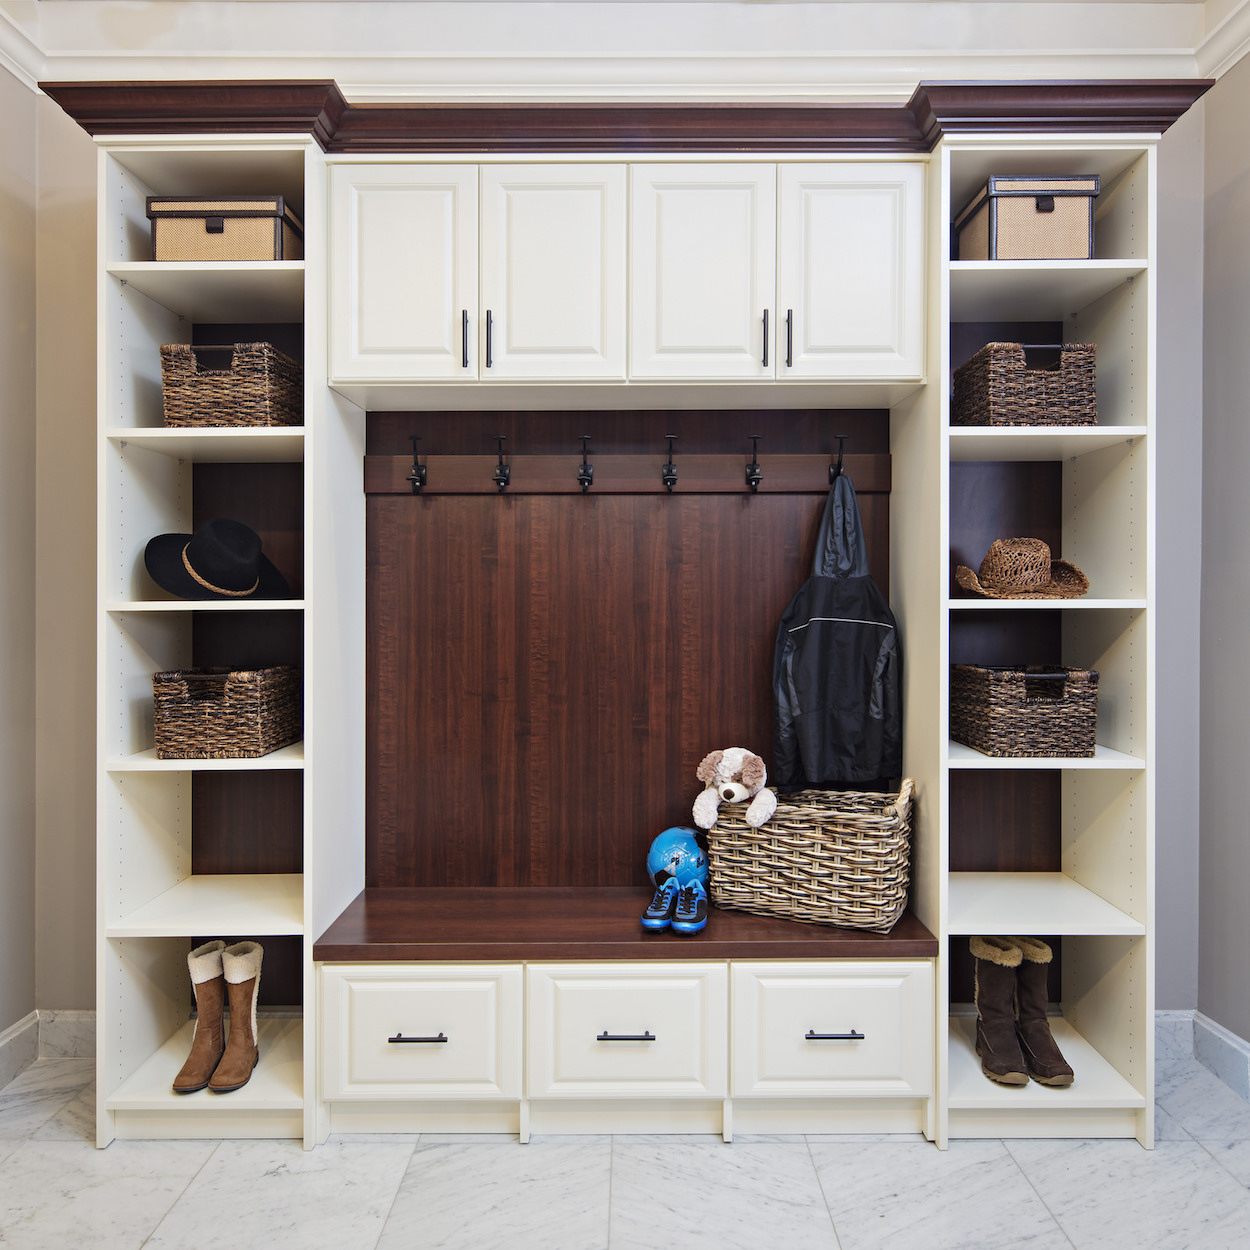 Entryway storage cabinetry Closet & Storage Concepts